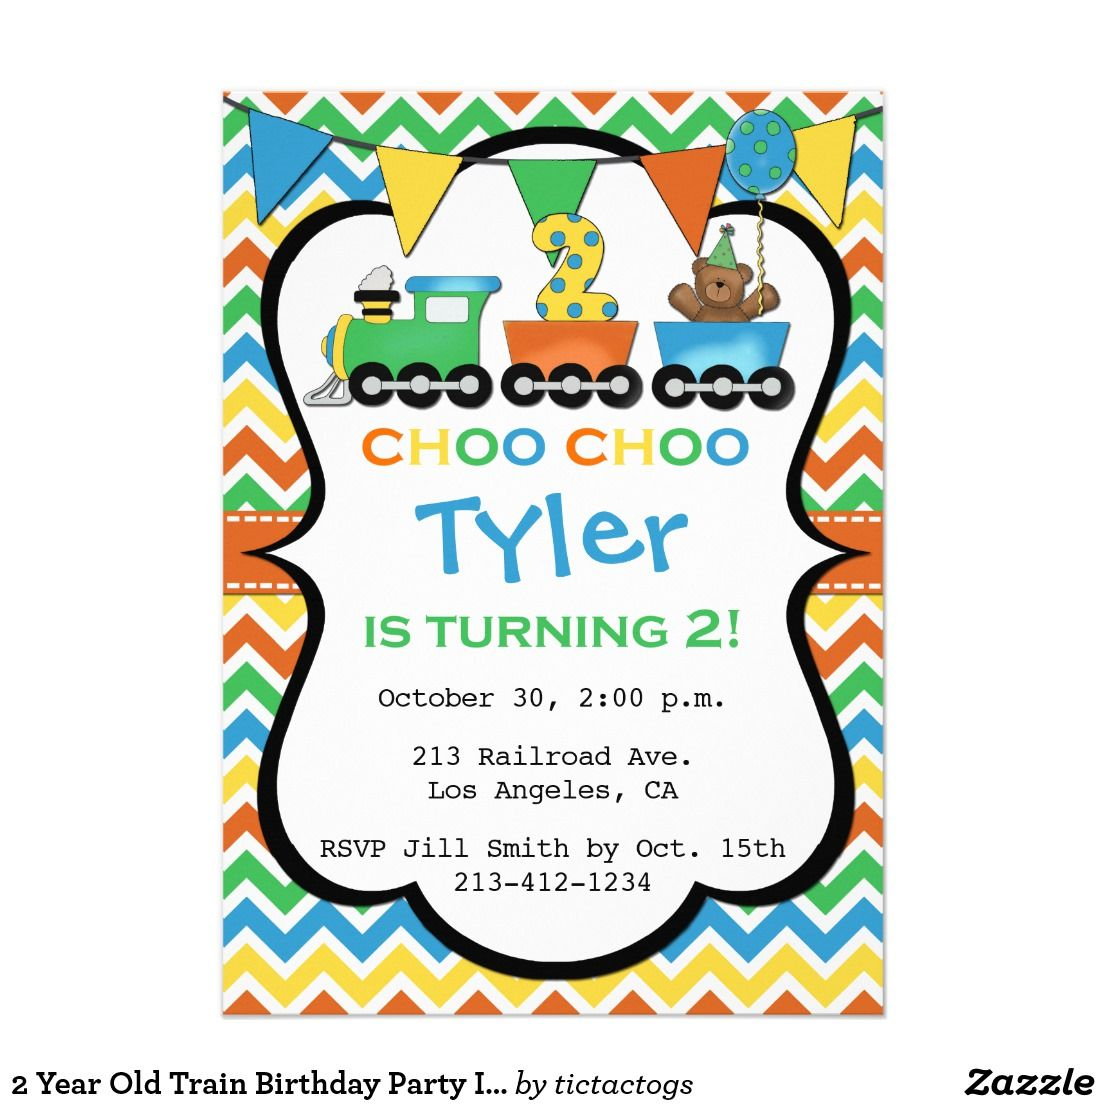 2 Year Old Train Birthday Party Invitation Heres A Super Cute For Little Guy That Is Turning Two Features Colorful With